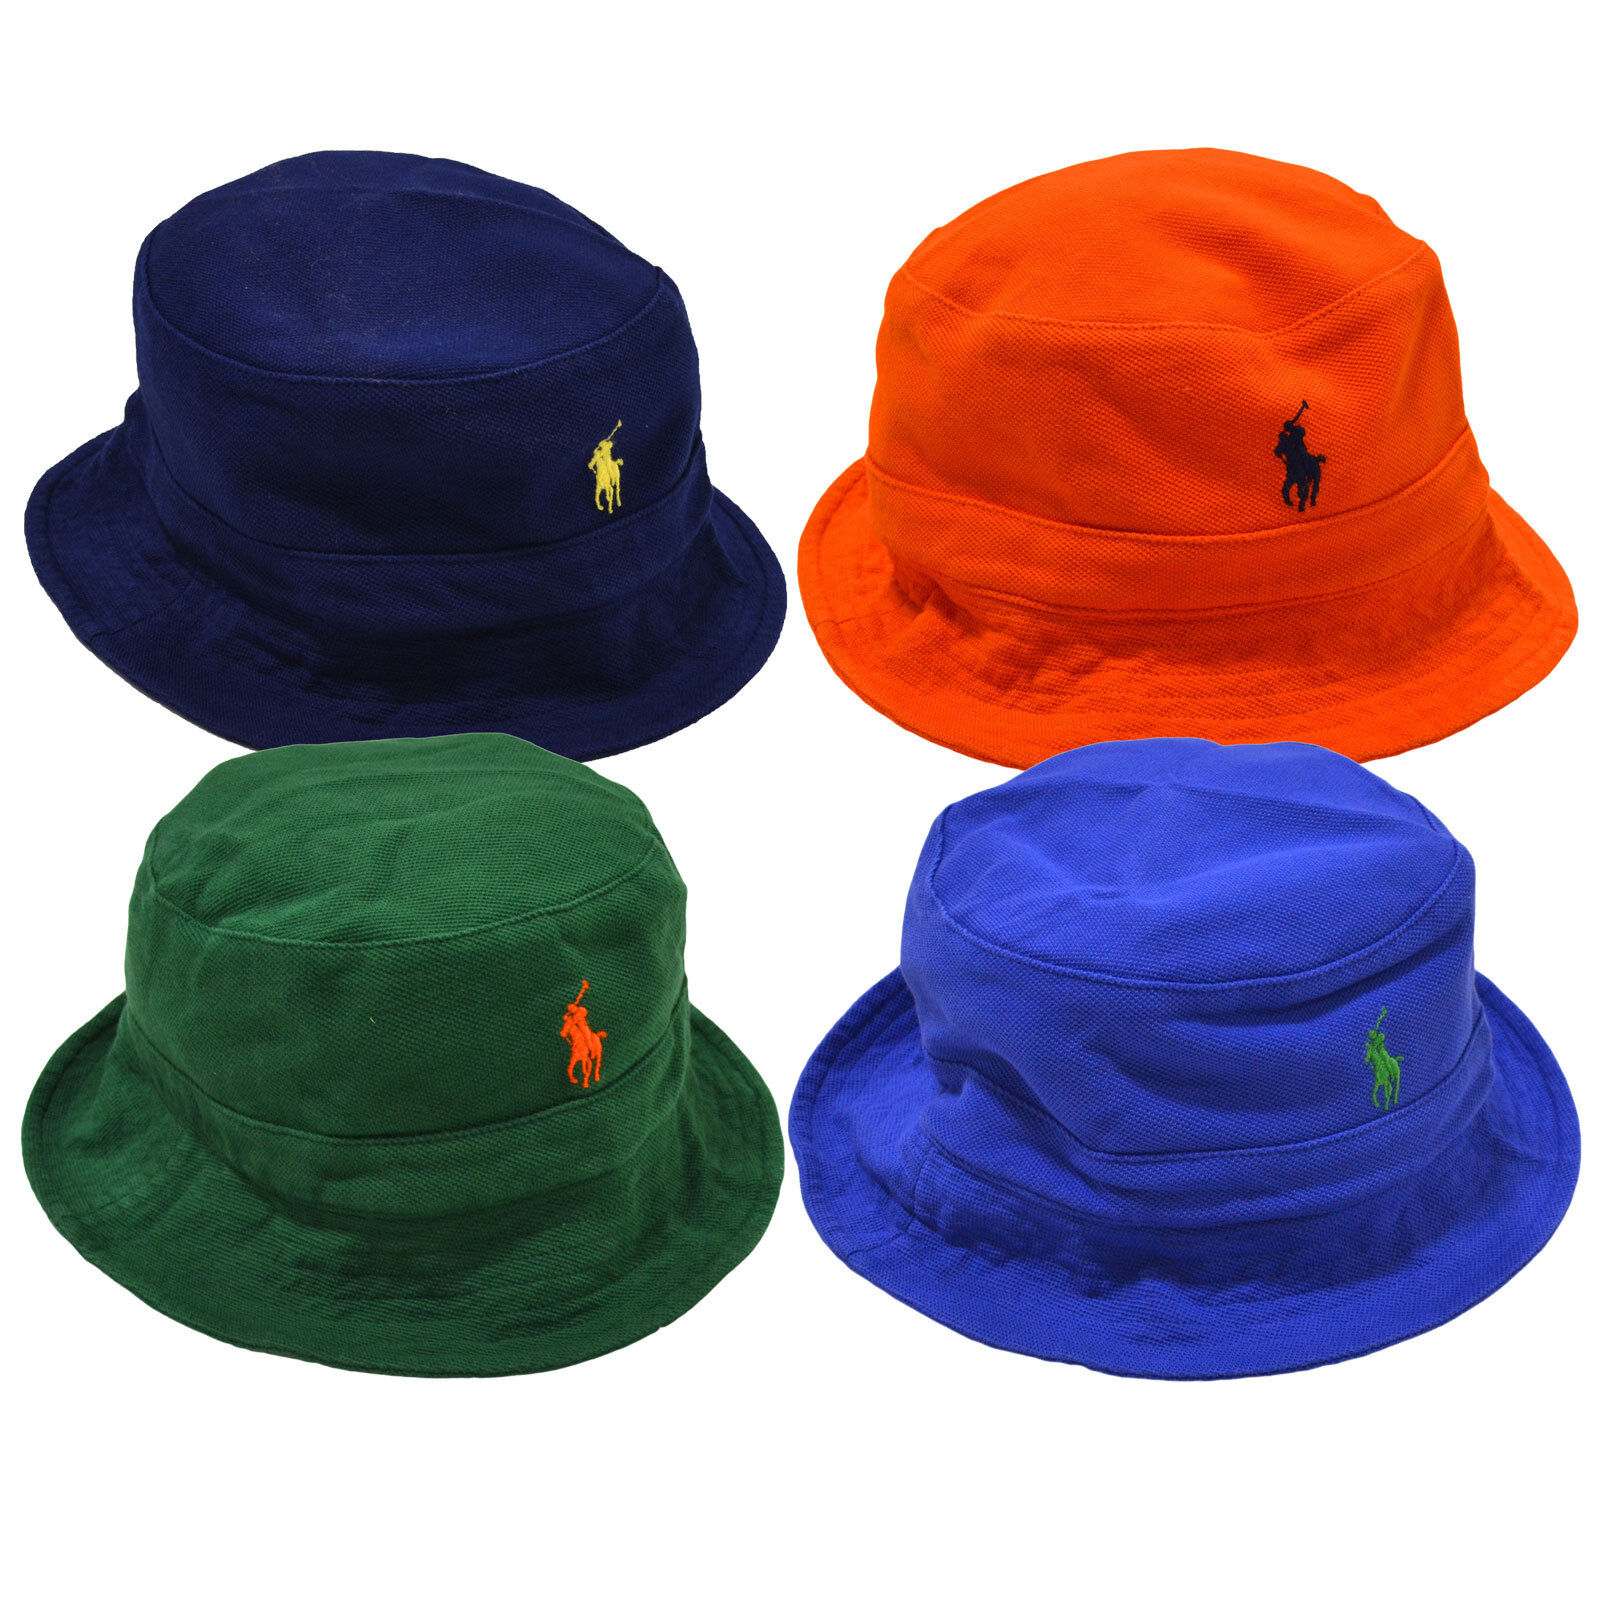 Polo Ralph Lauren Mesh Knit Mens Bucket Hat Embroidered Pony